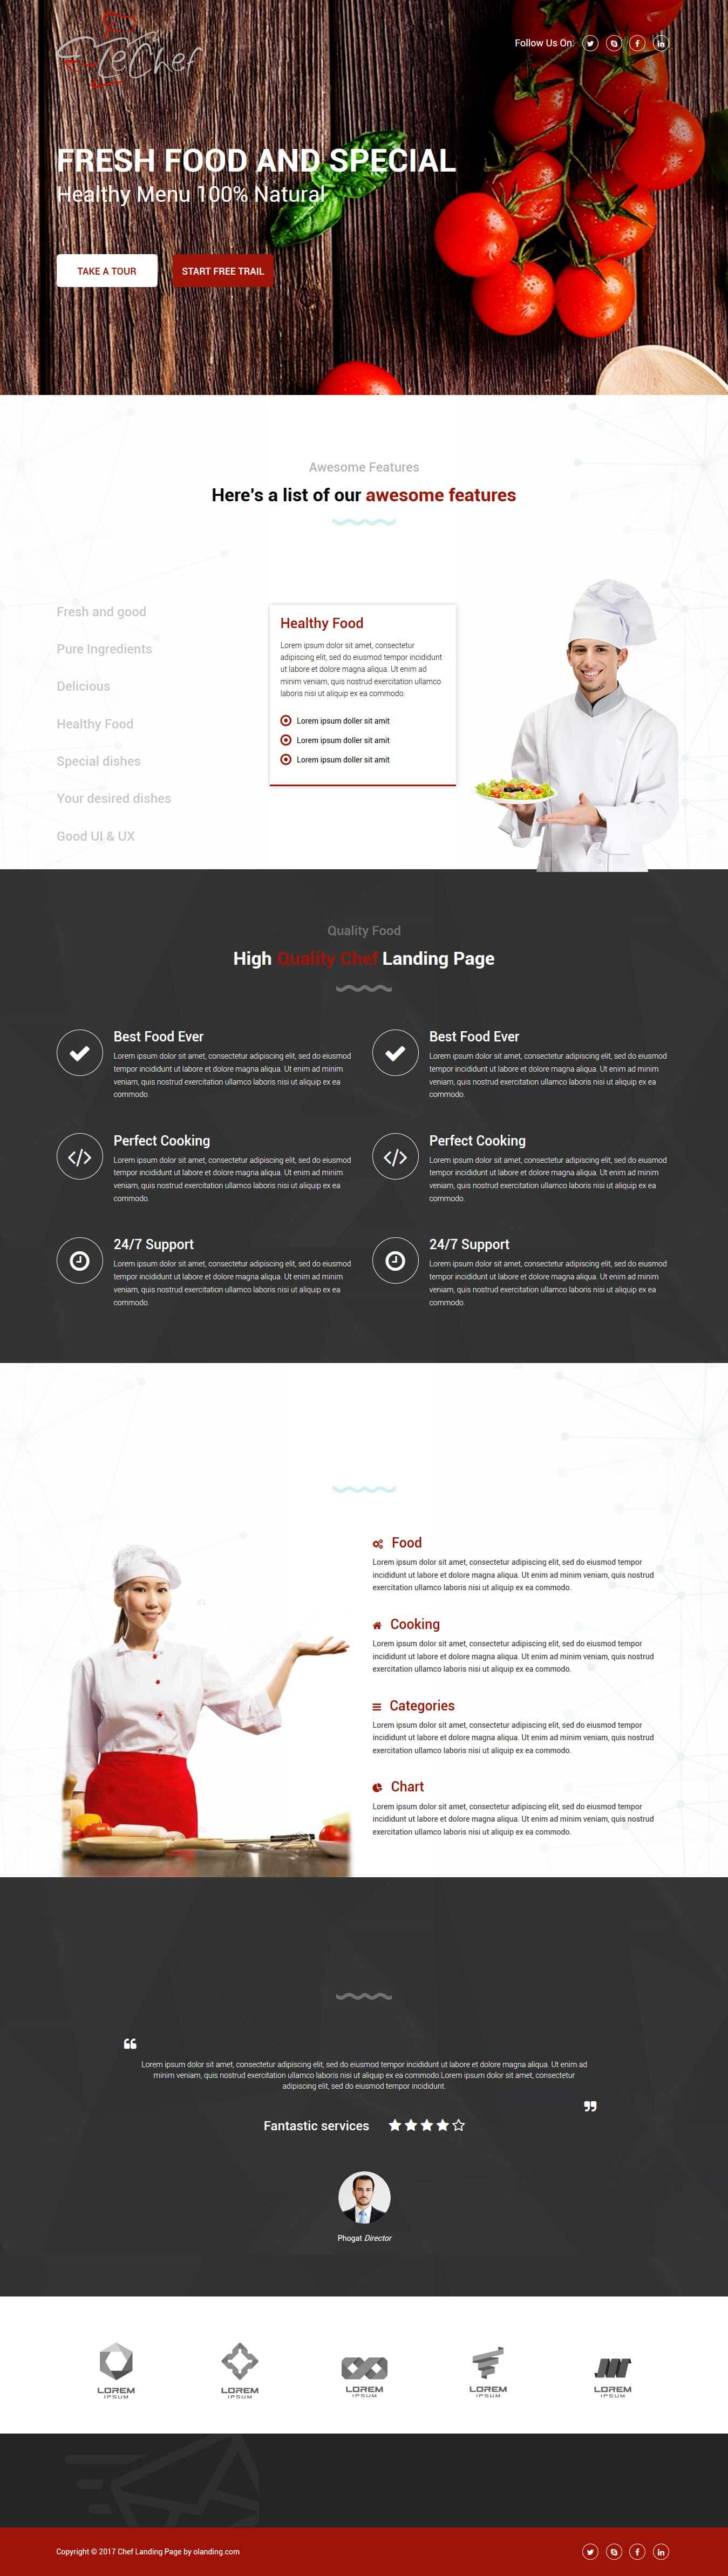 Best Adwords PPC Landing Pages Design Templates of 2018